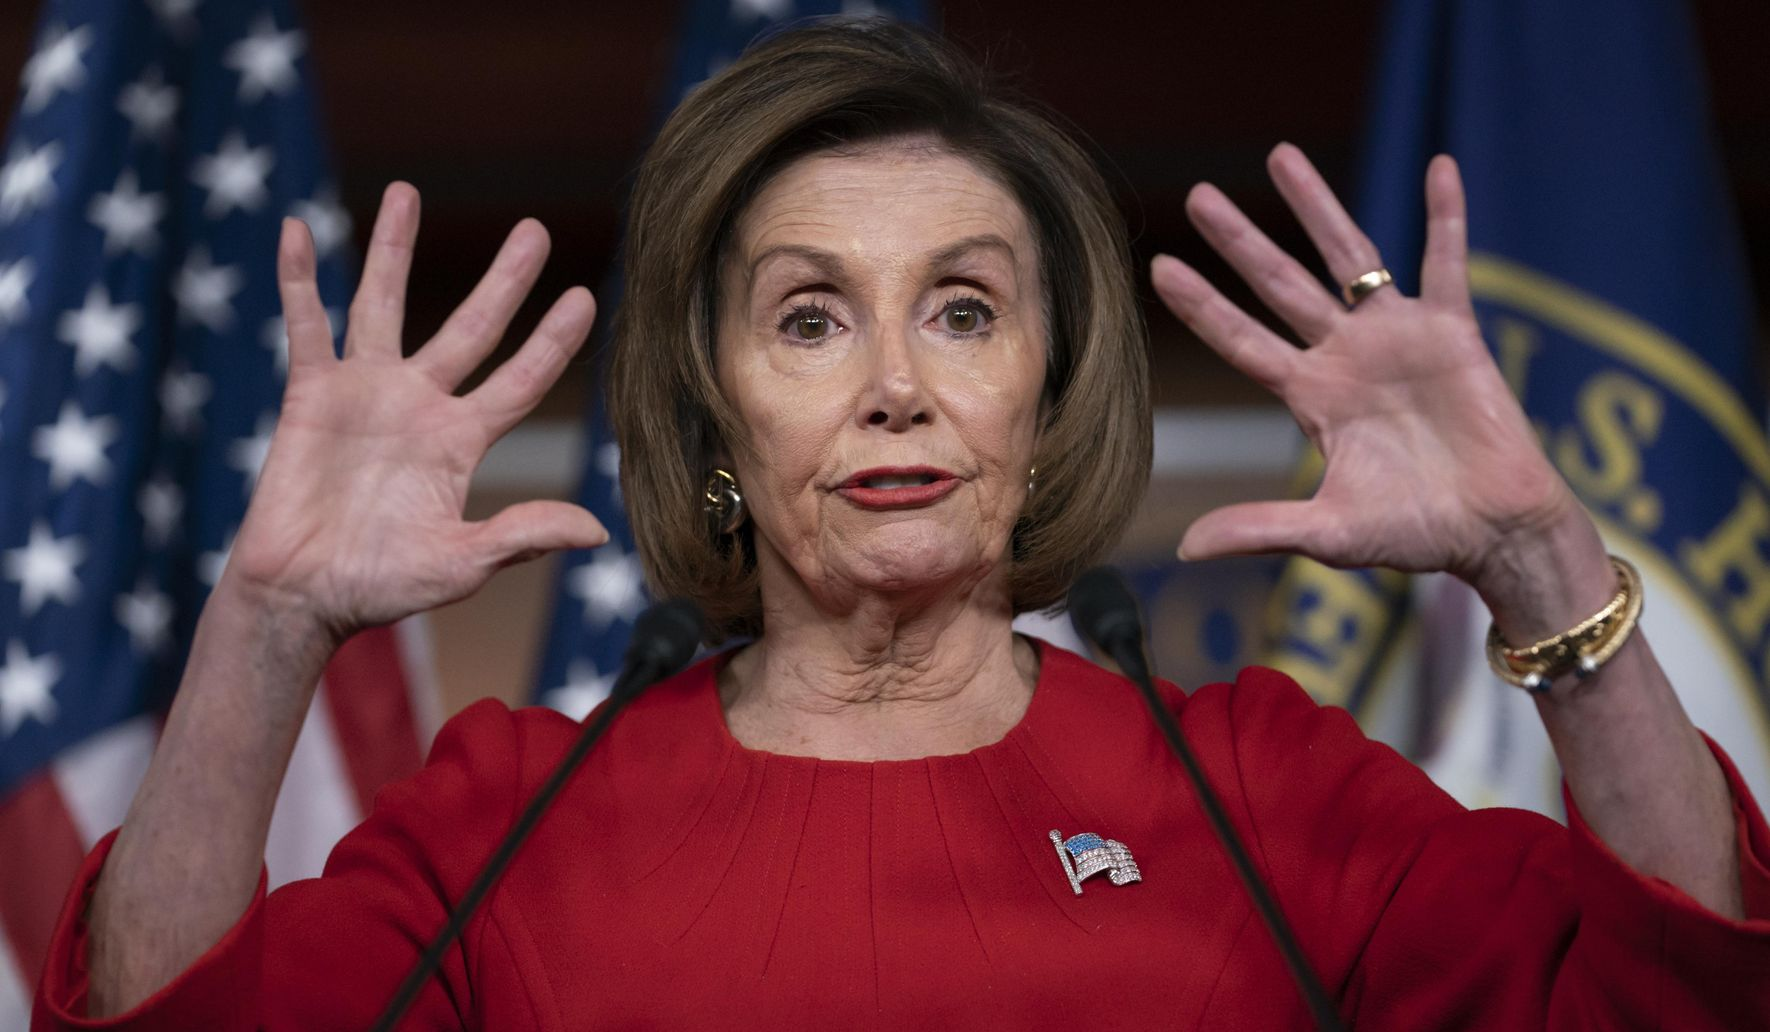 Nancy Pelosi goes for slam dunk -- and crashes to floor